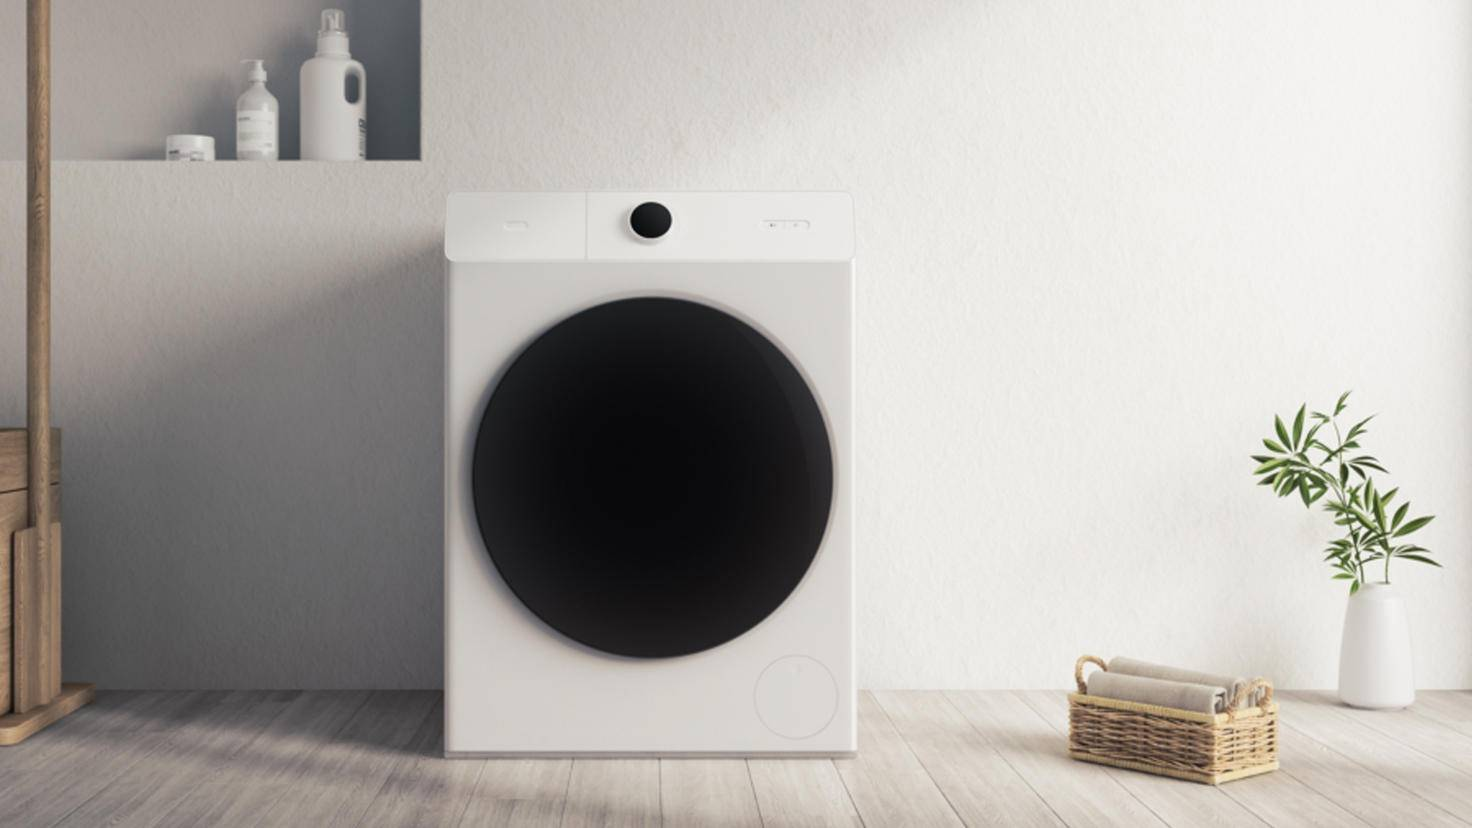 Mi Smart Combo Wash Dryer Pro Kombi-Waschmaschine-Xiaomi